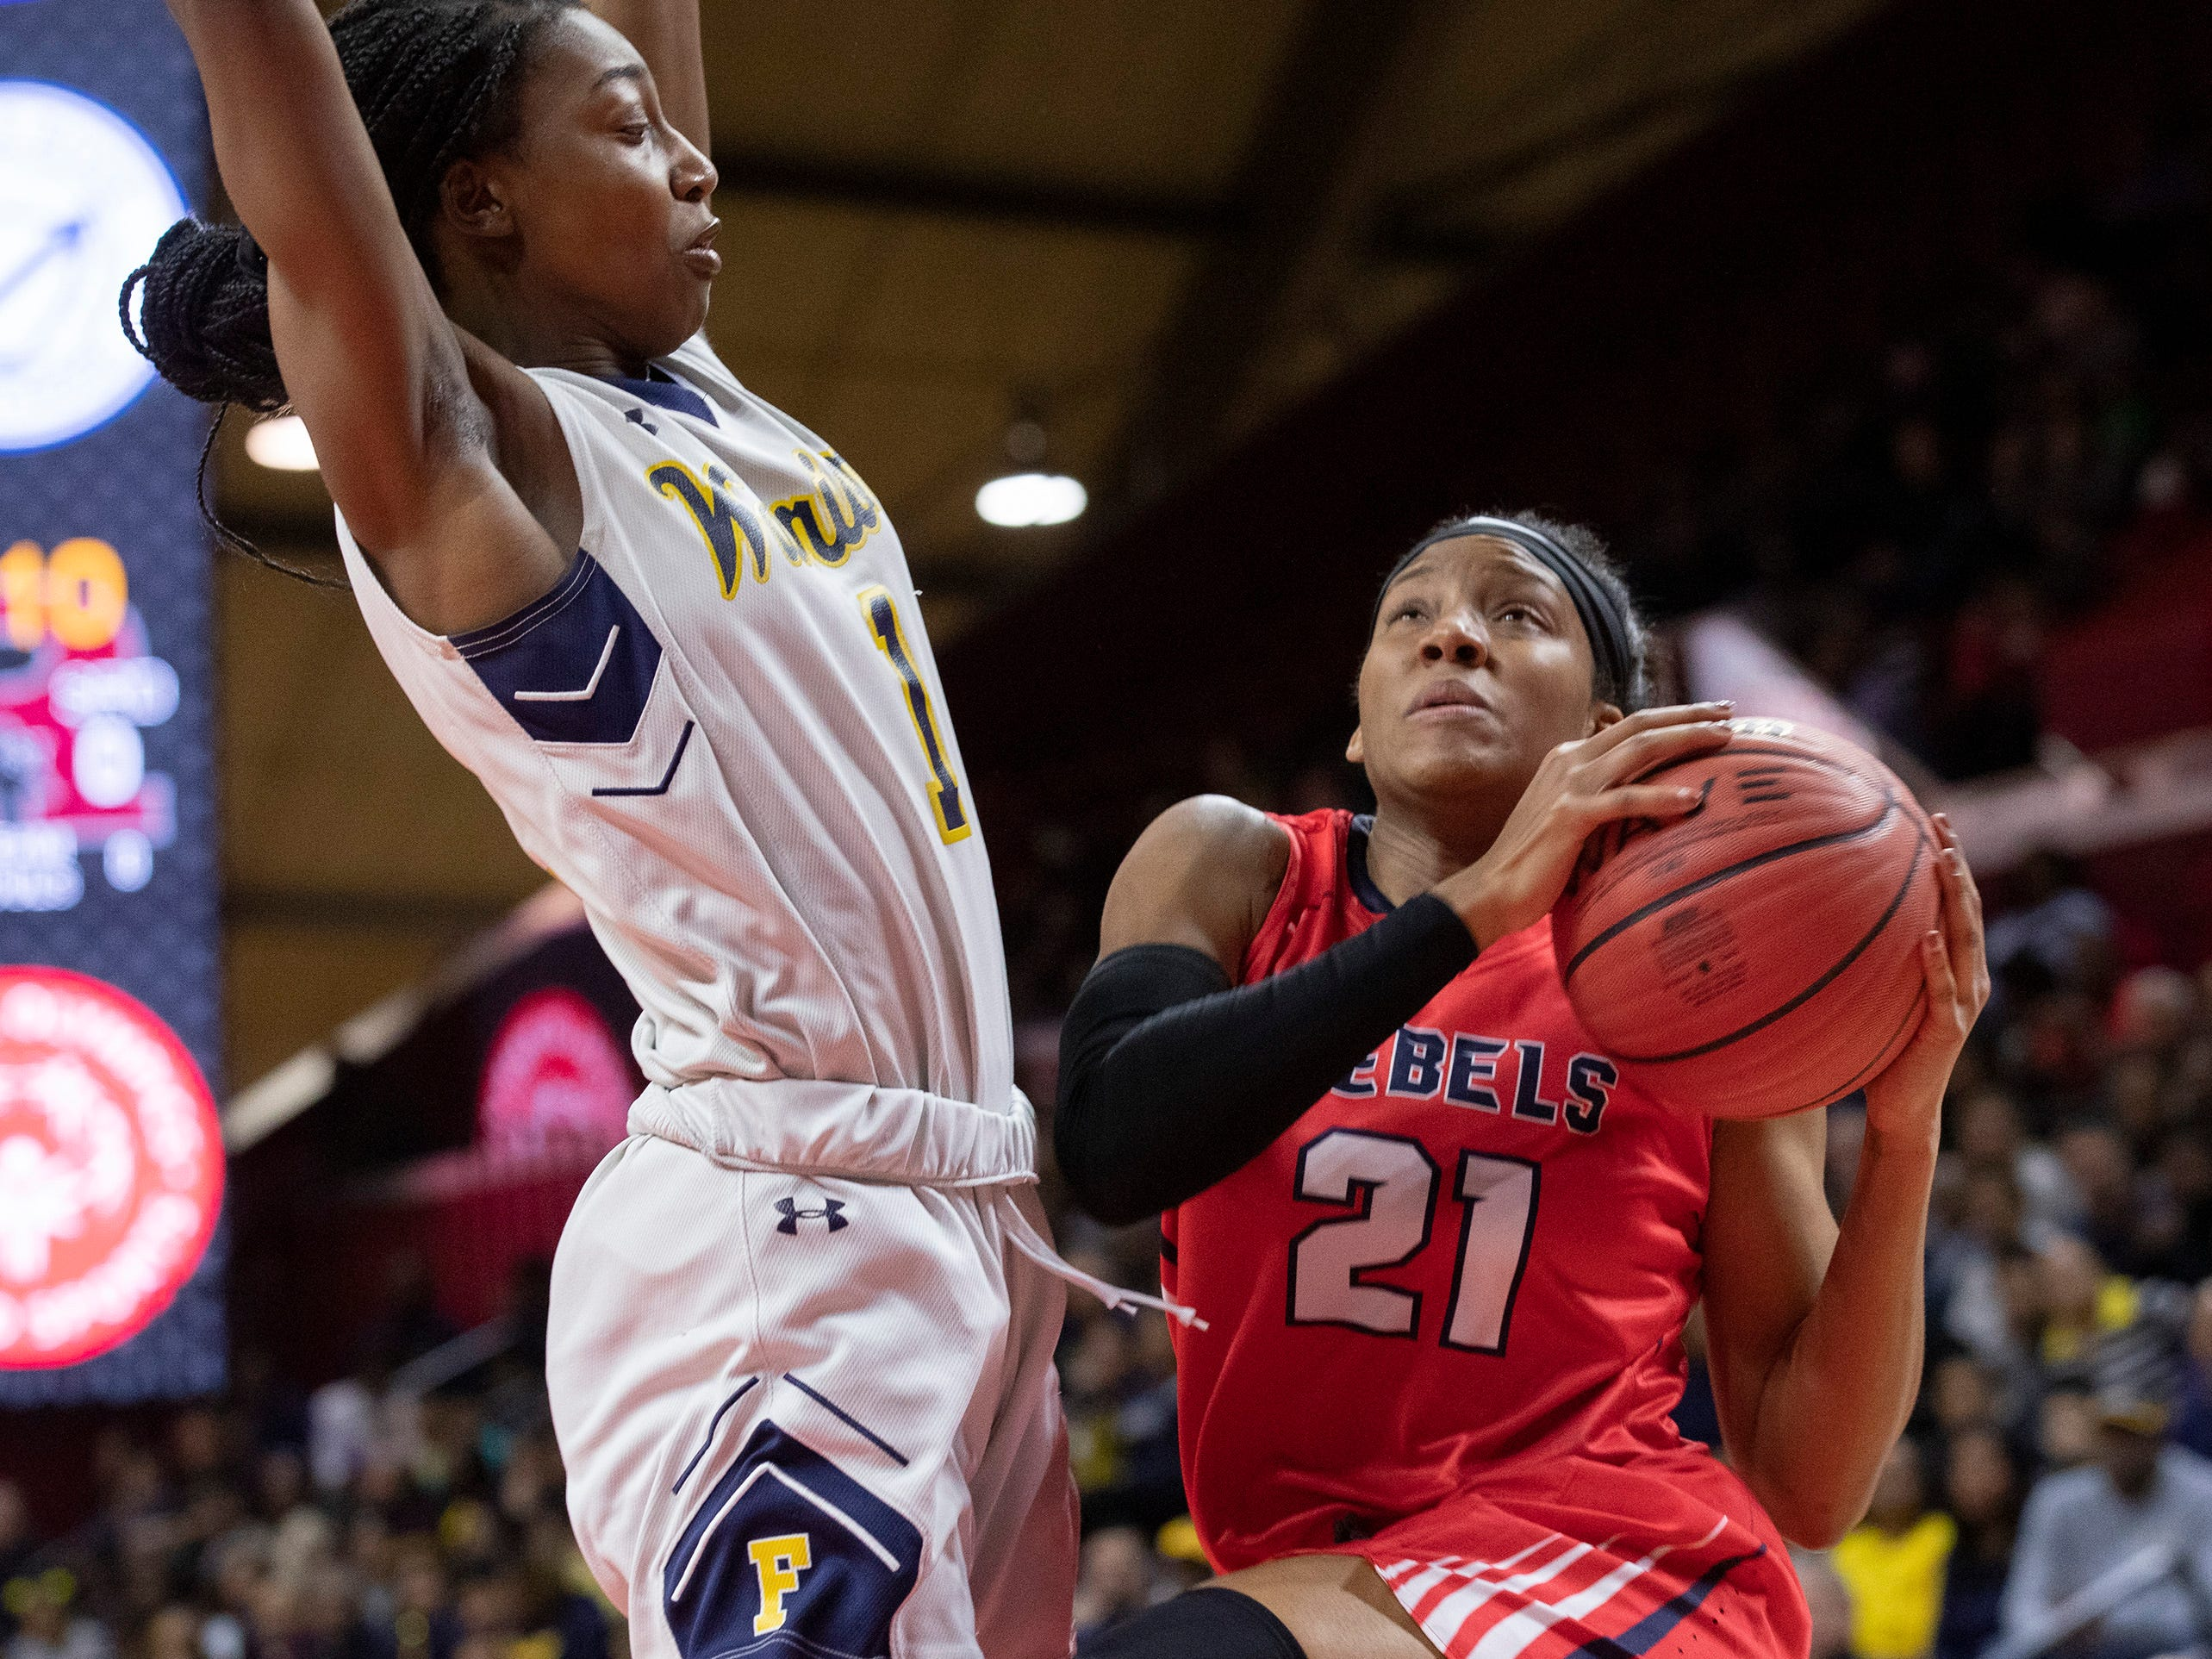 Saddle River Day's Sydnei Caldwell (21) drives to the basket against Franklin's Diamond Miller. 2019 NJSIAA girls basketball Tournament of Champions final in Piscataway, N.J. on March 17, 2019.